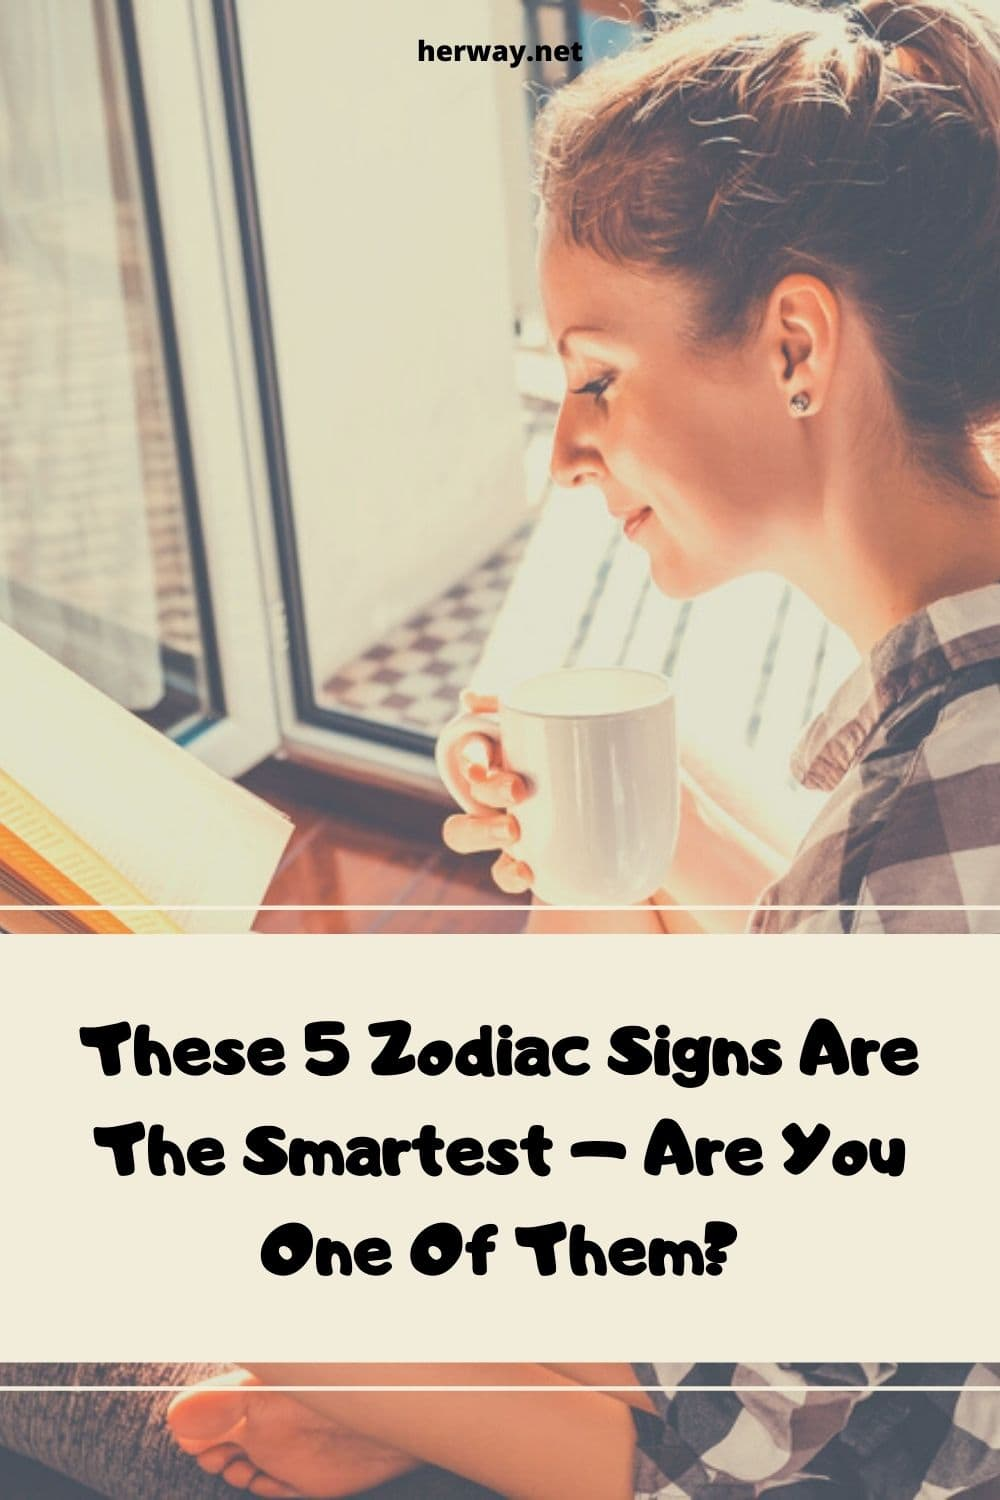 These 5 Zodiac Signs Are The Smartest – Are You One Of Them